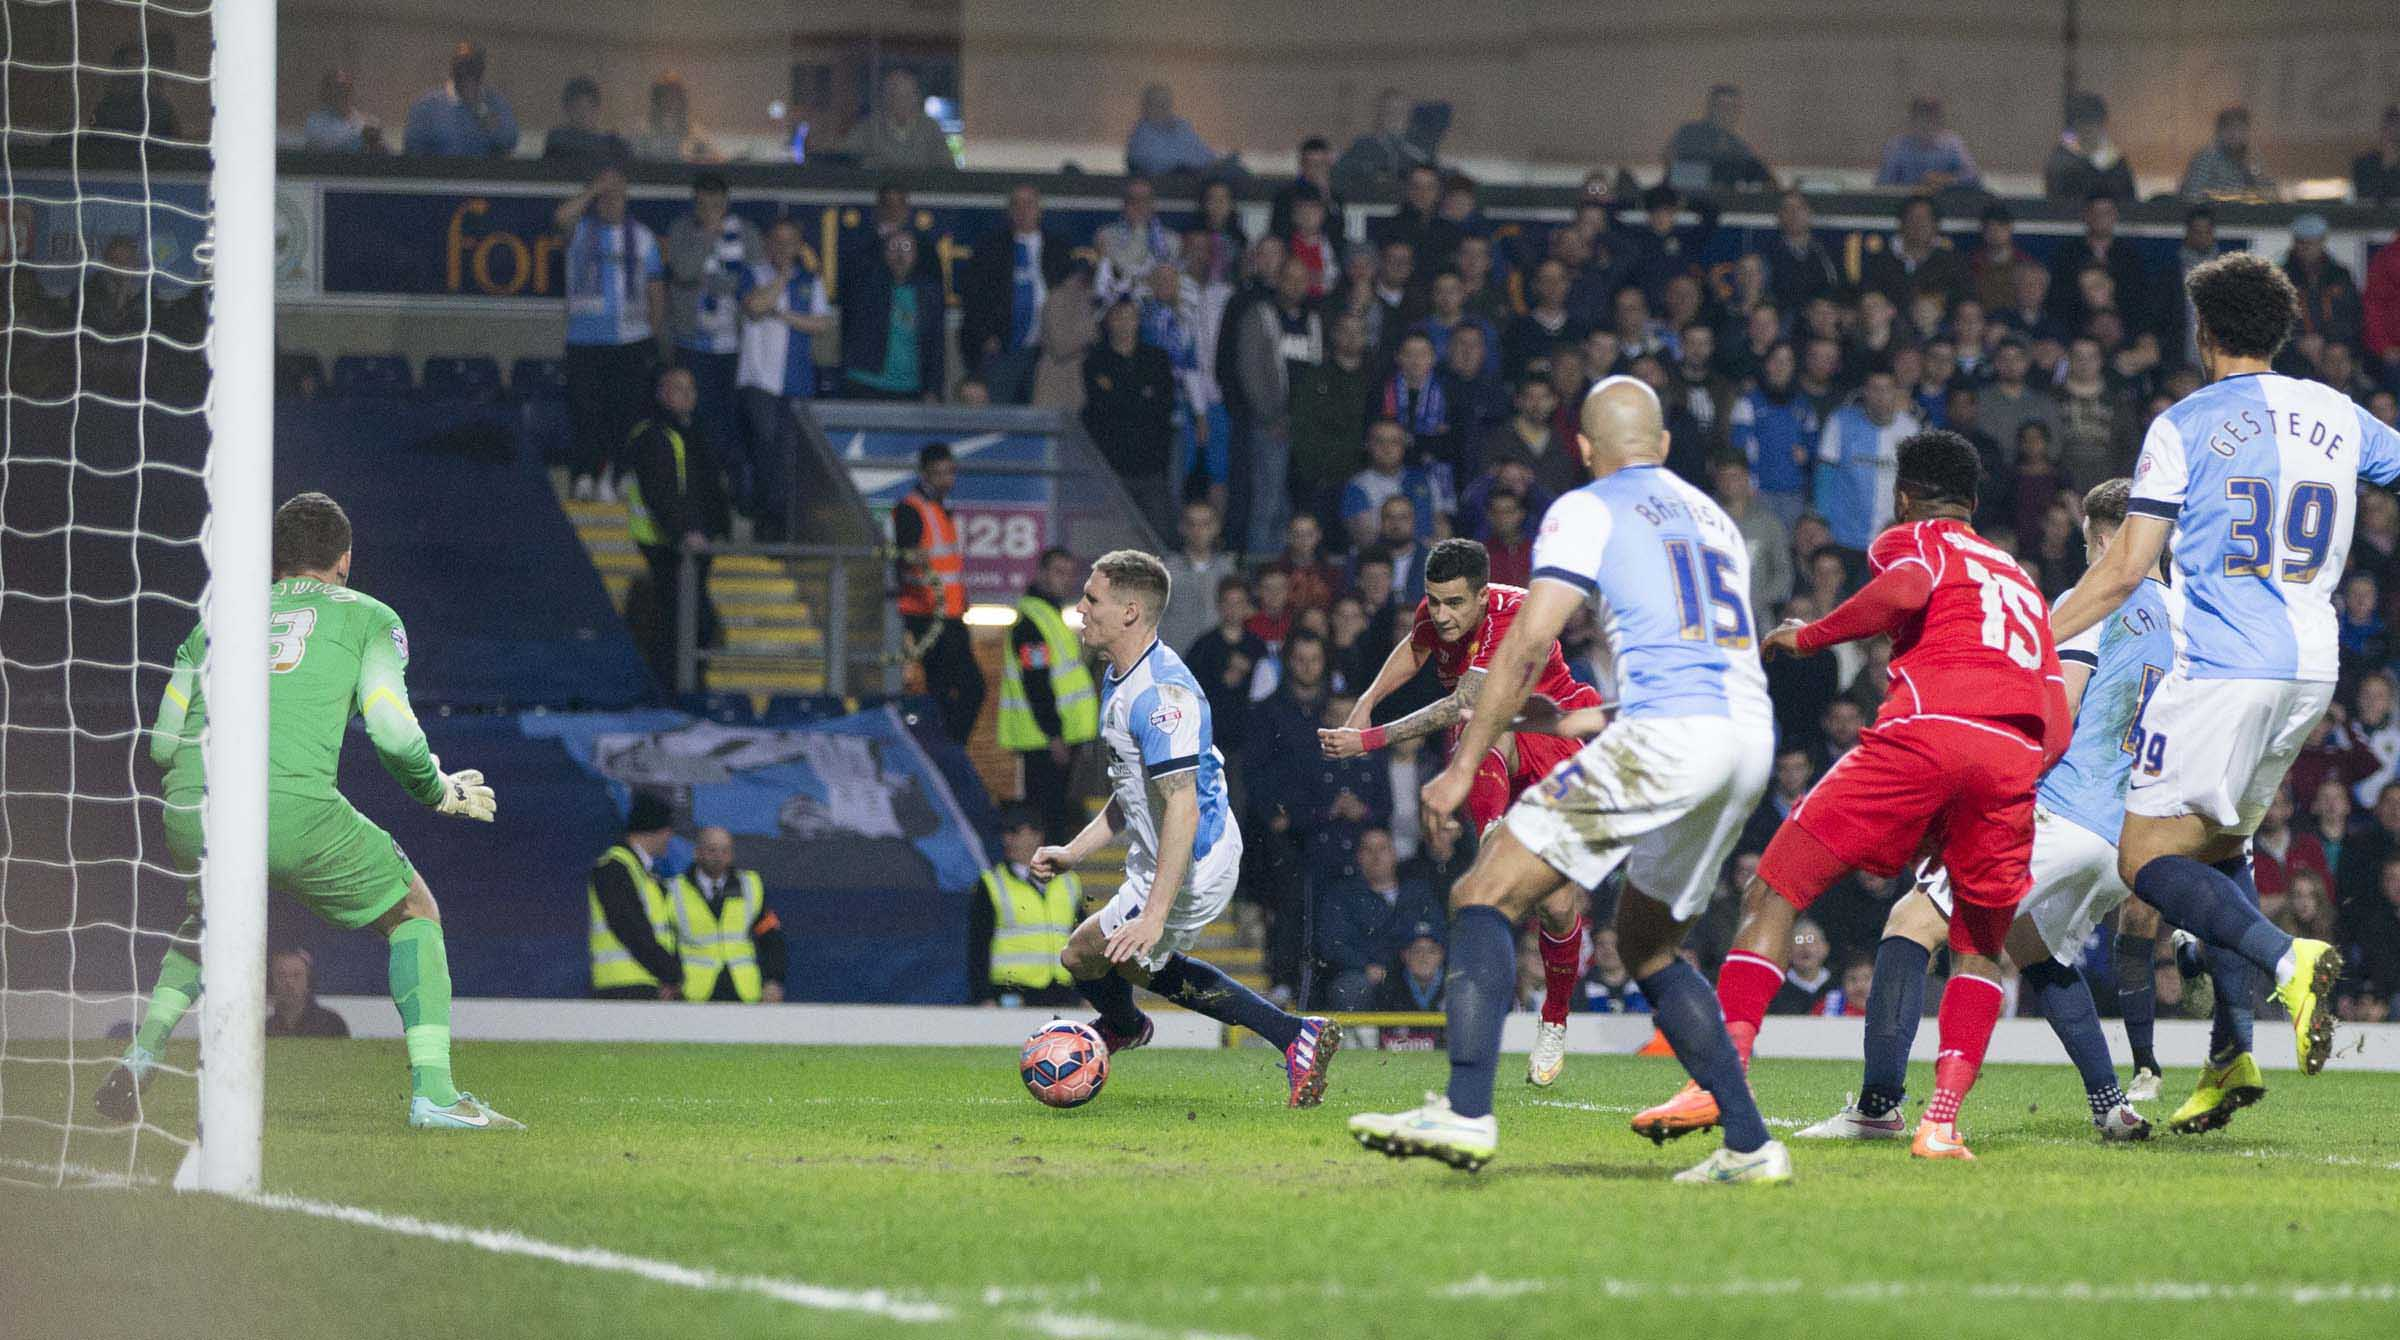 MATCH REVIEW: BLACKBURN ROVERS 0 LIVERPOOL 1